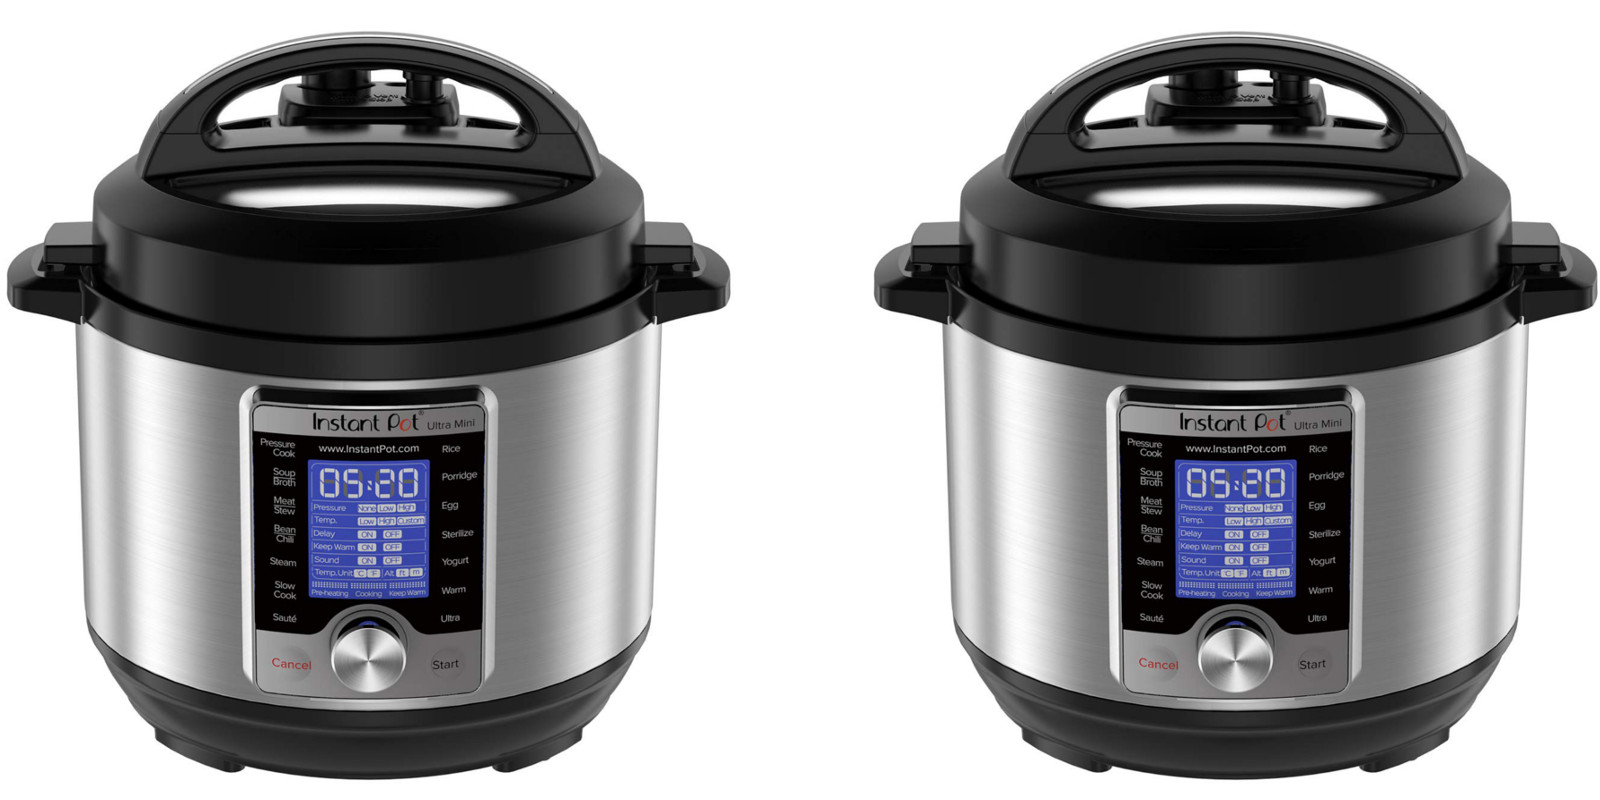 Black Friday home Instant Pot deals